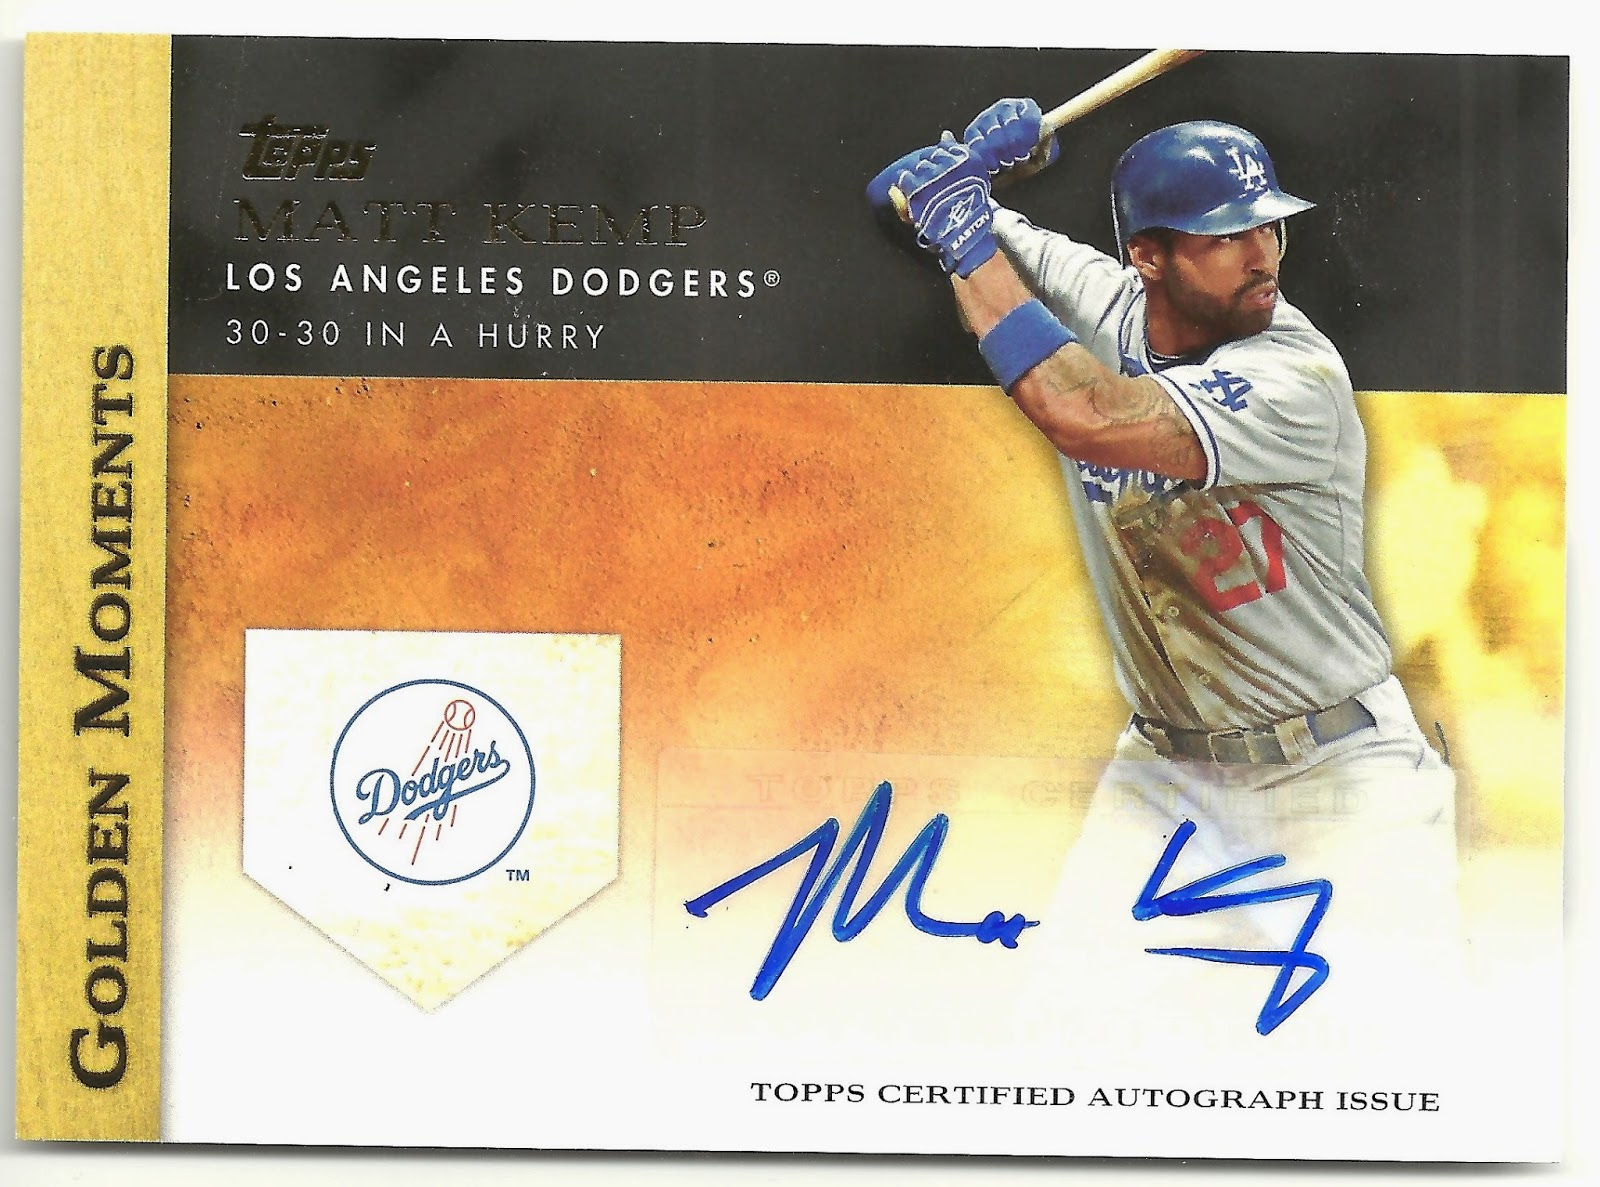 Matt Kemp Autographed Card The Matt Kemp Autographed